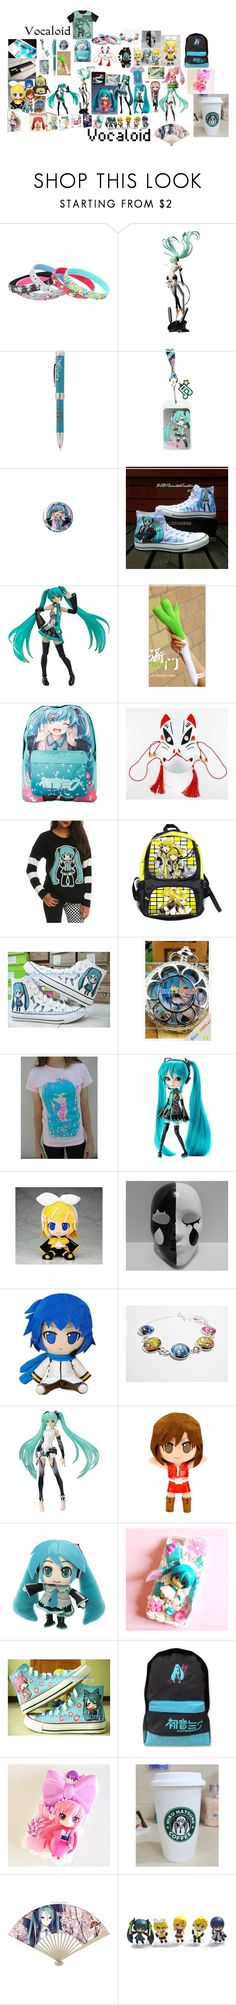 """""""Vocaloid"""" by misspinkypie ❤ liked on Polyvore featuring Converse, Sega, Shin Choi, A2 by Aerosoles and Samsung"""